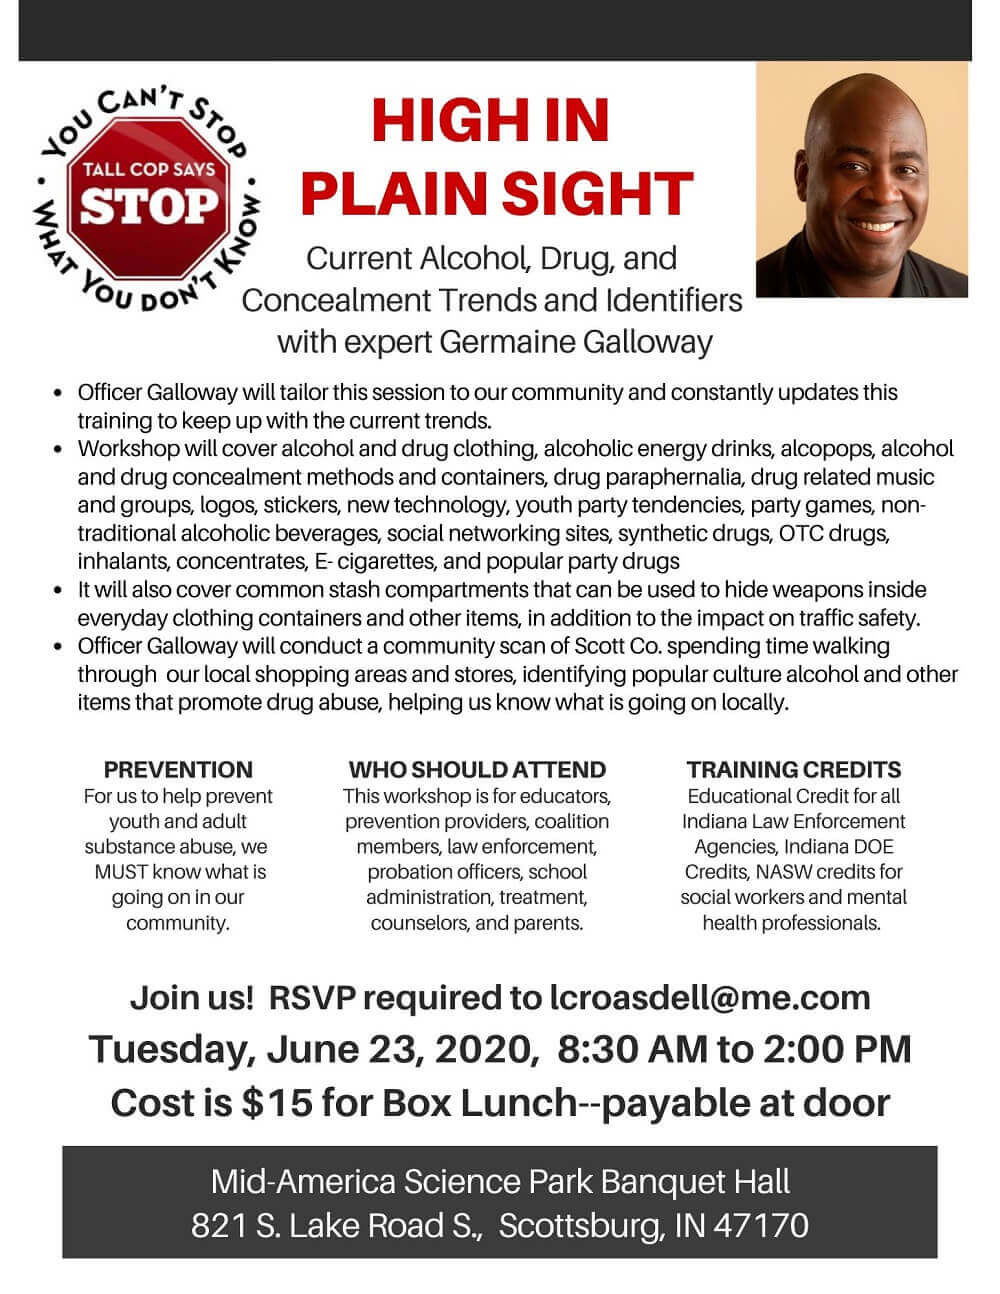 Tall Cop High in Plain Sight Training Session Flyer